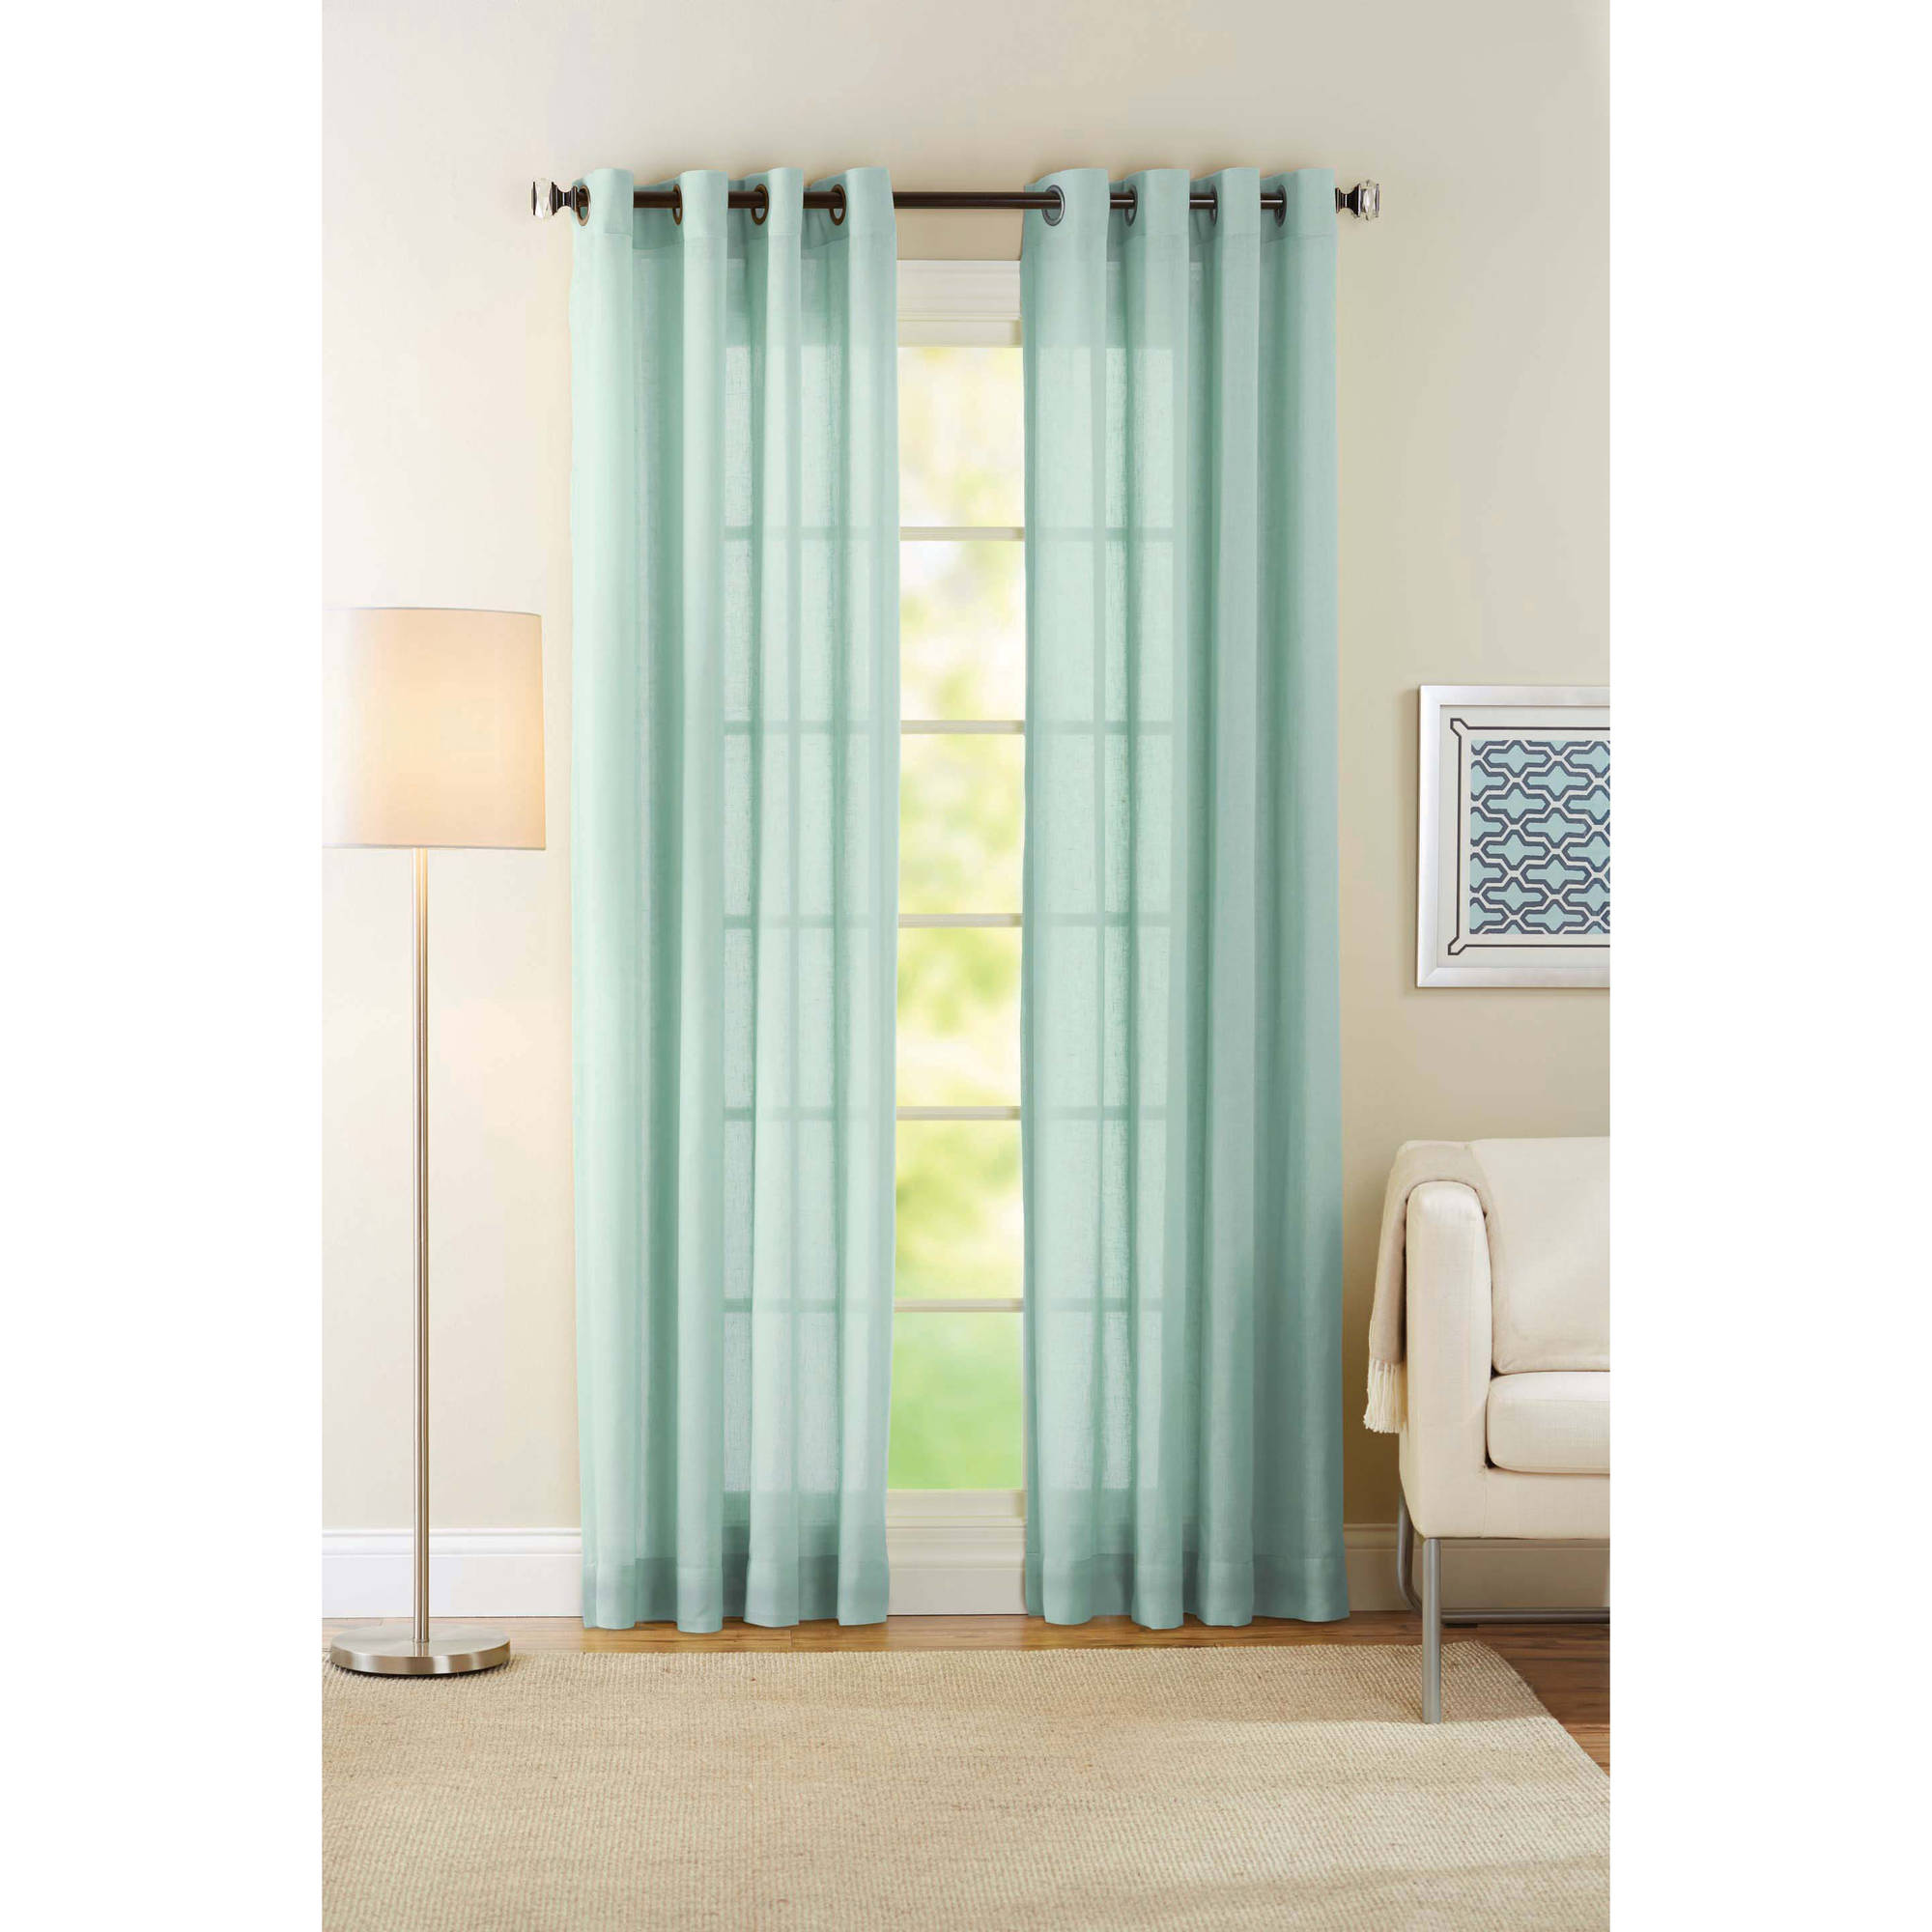 Sheer curtains- perfect for any window